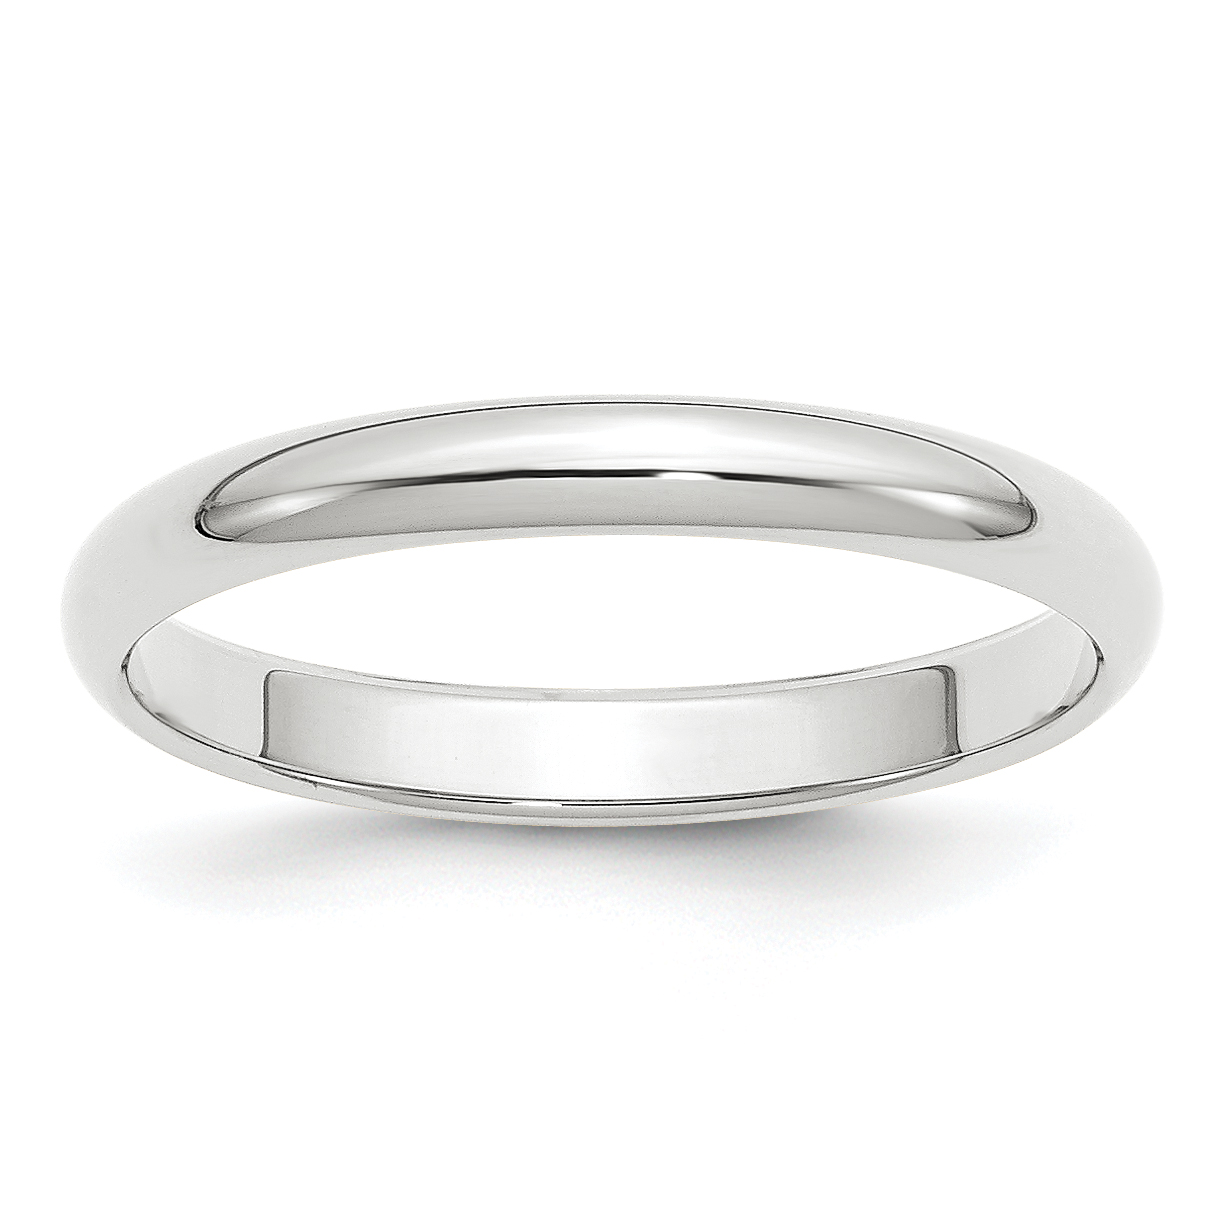 14k White Gold 3mm Half Round Wedding Ring Band Size 12.00 Classic Domed Fine Jewelry Gifts For Women For Her - image 9 of 9